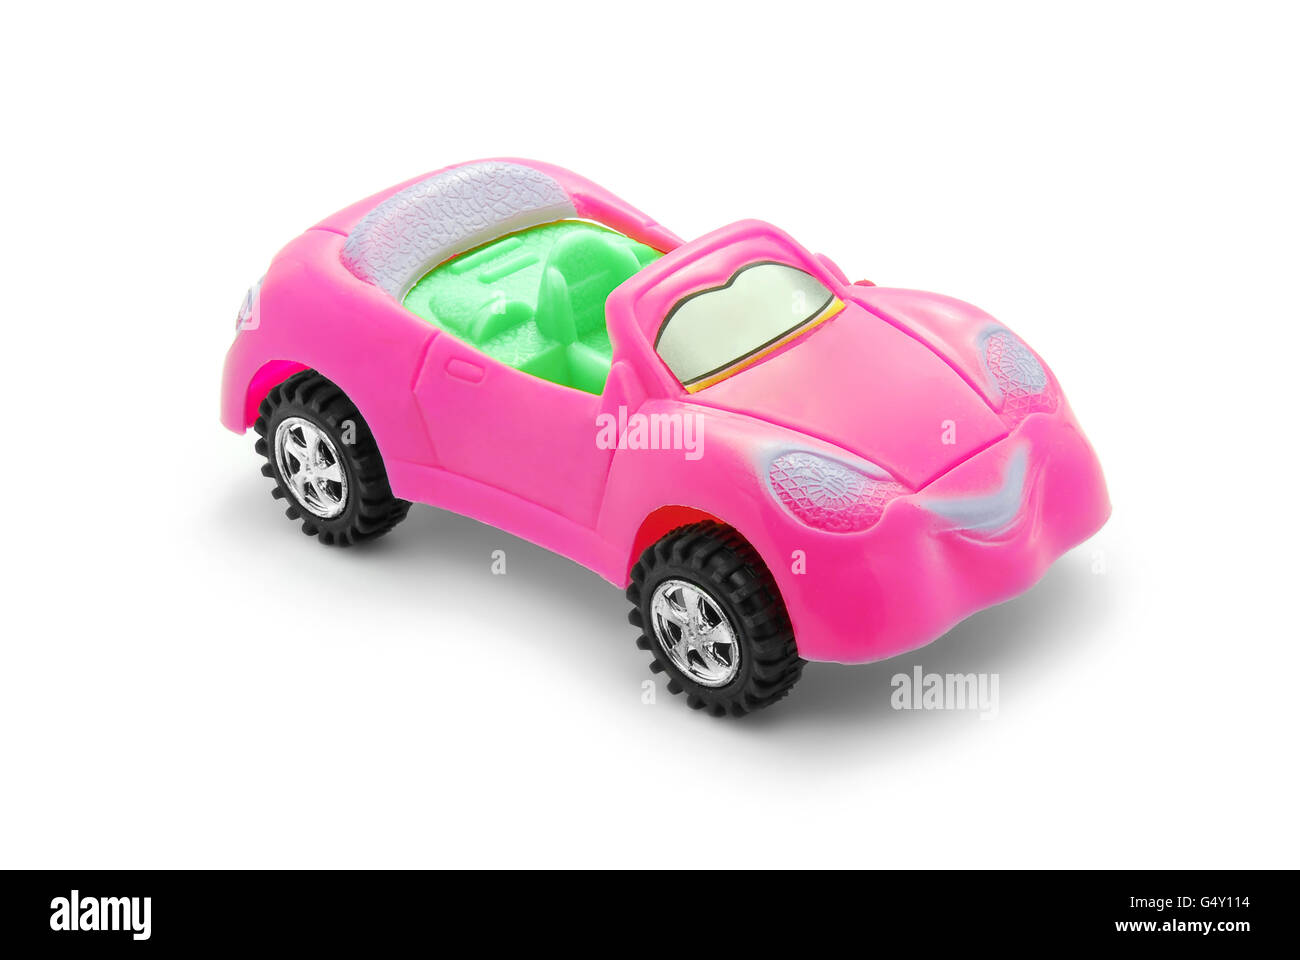 pink toy car Stock Photo